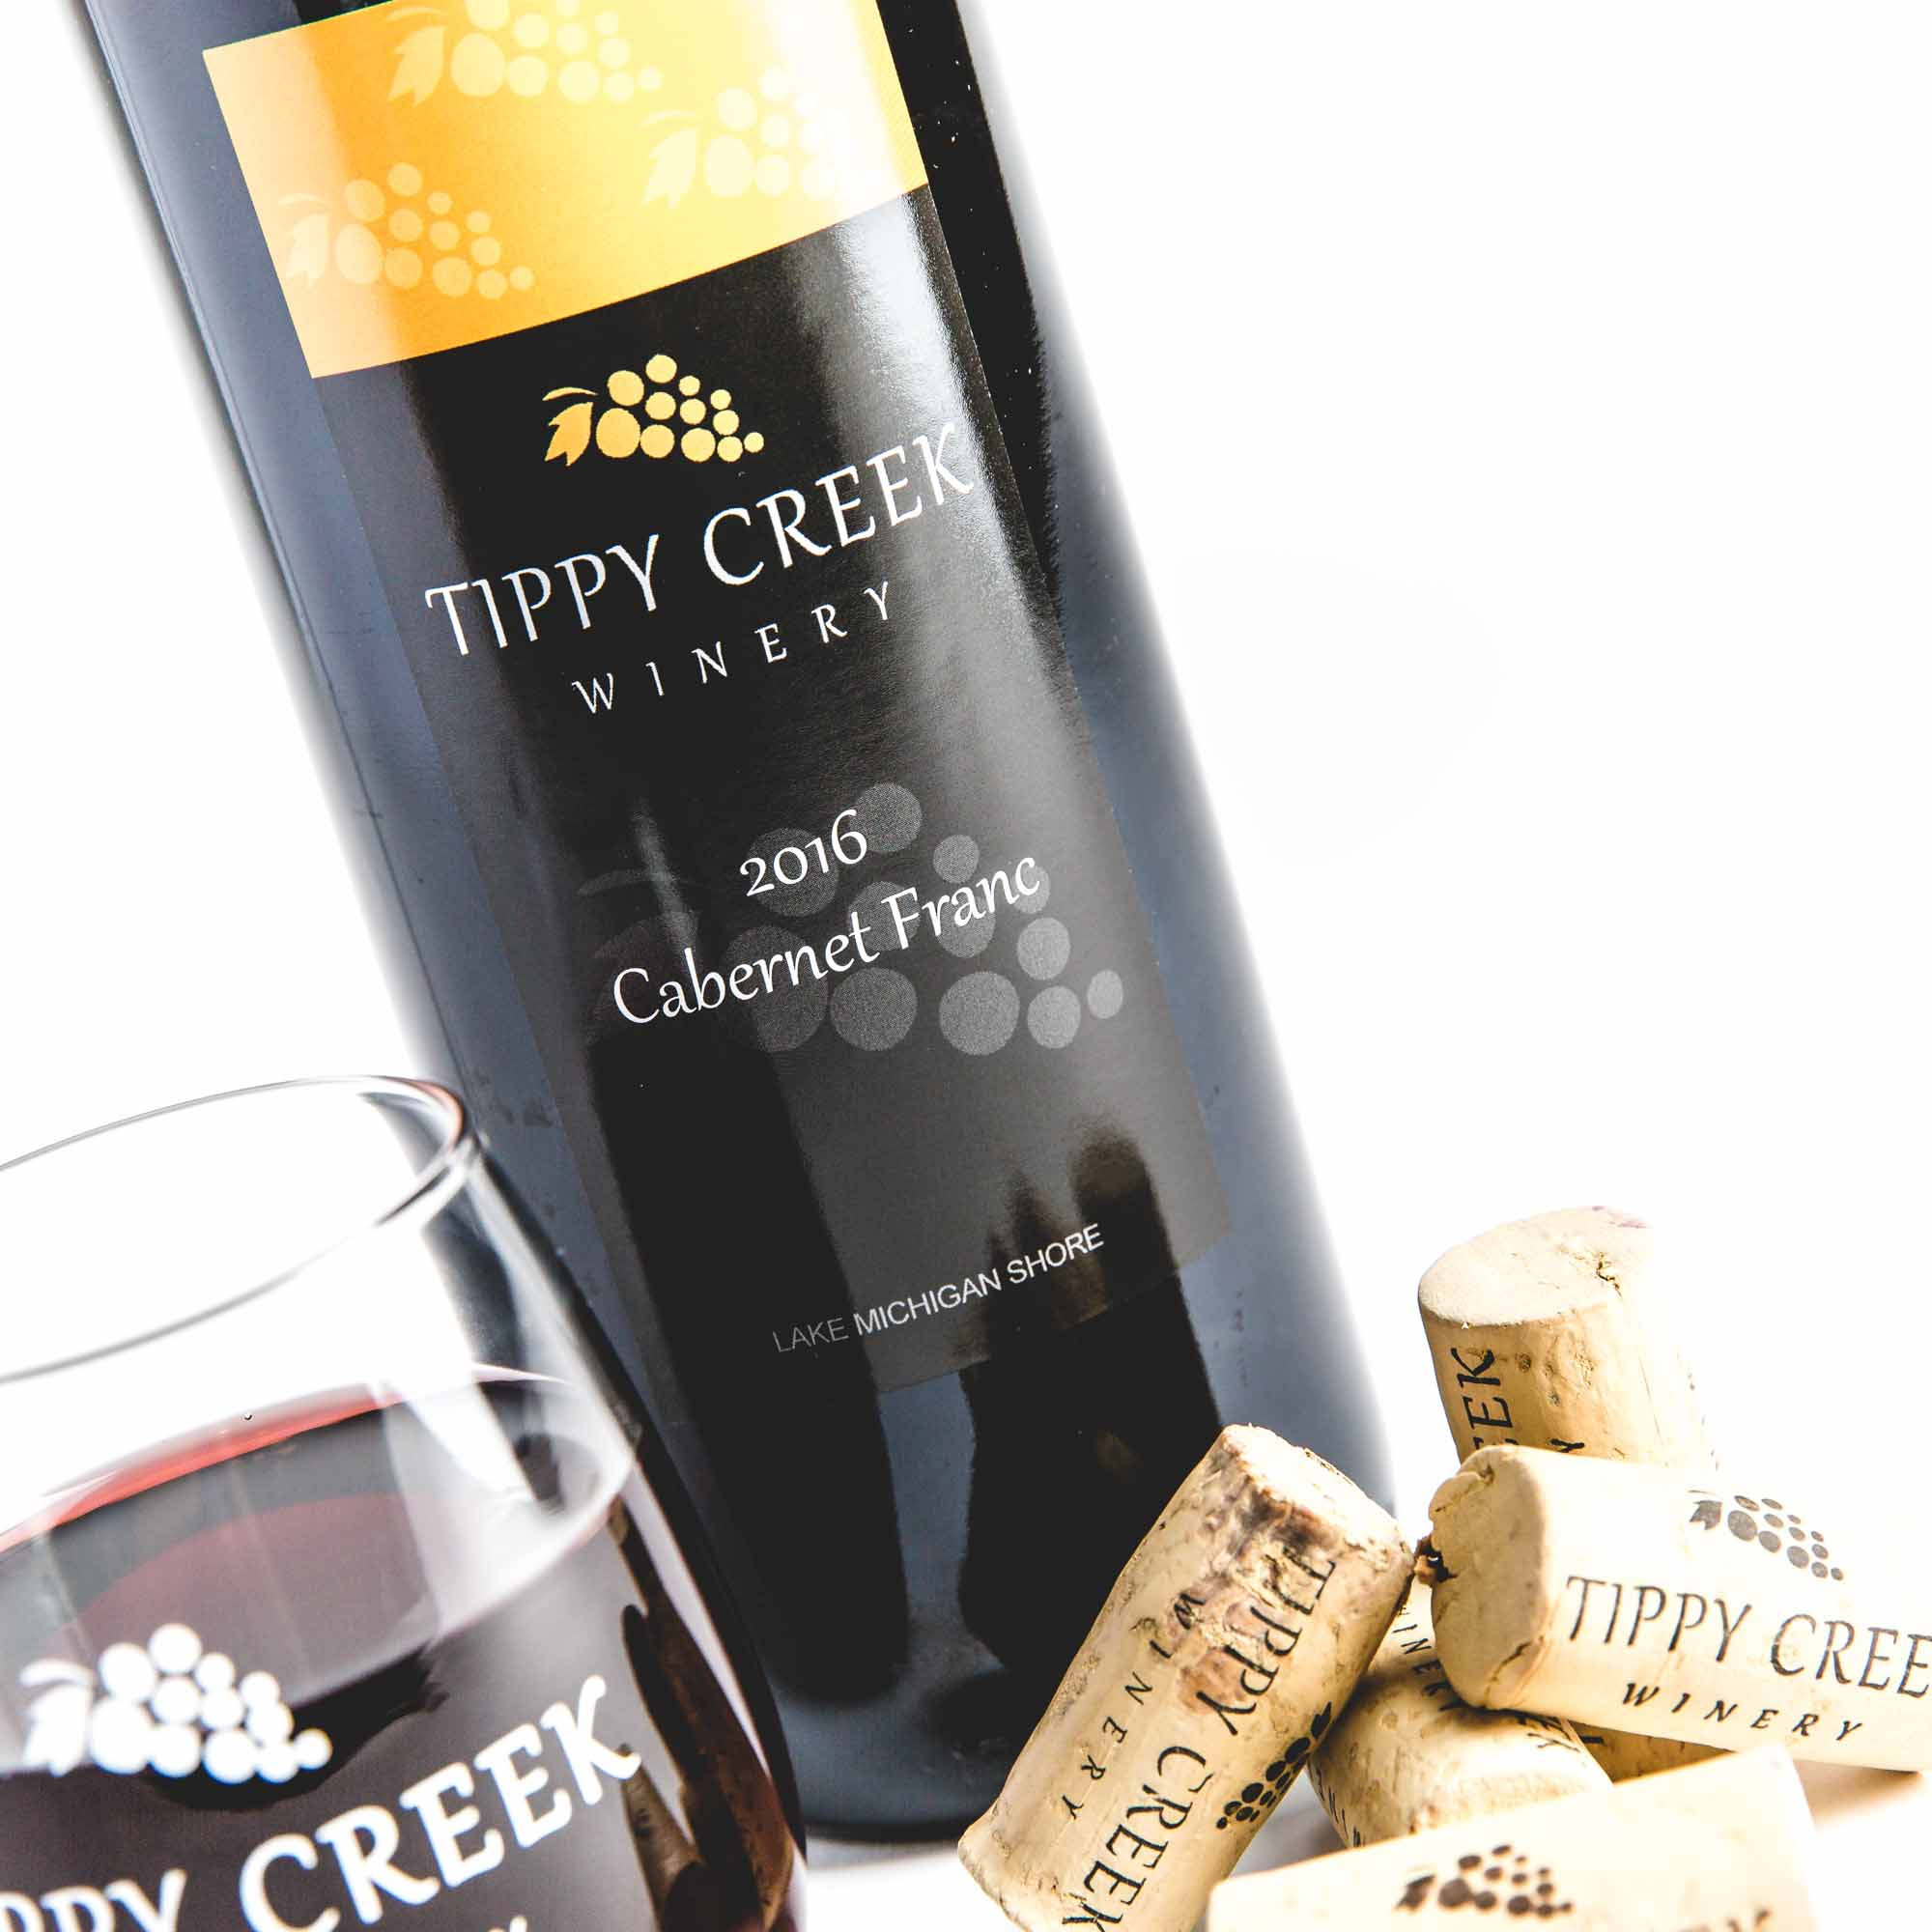 Cabernet Franc Red Wine Tippy Creek Winery